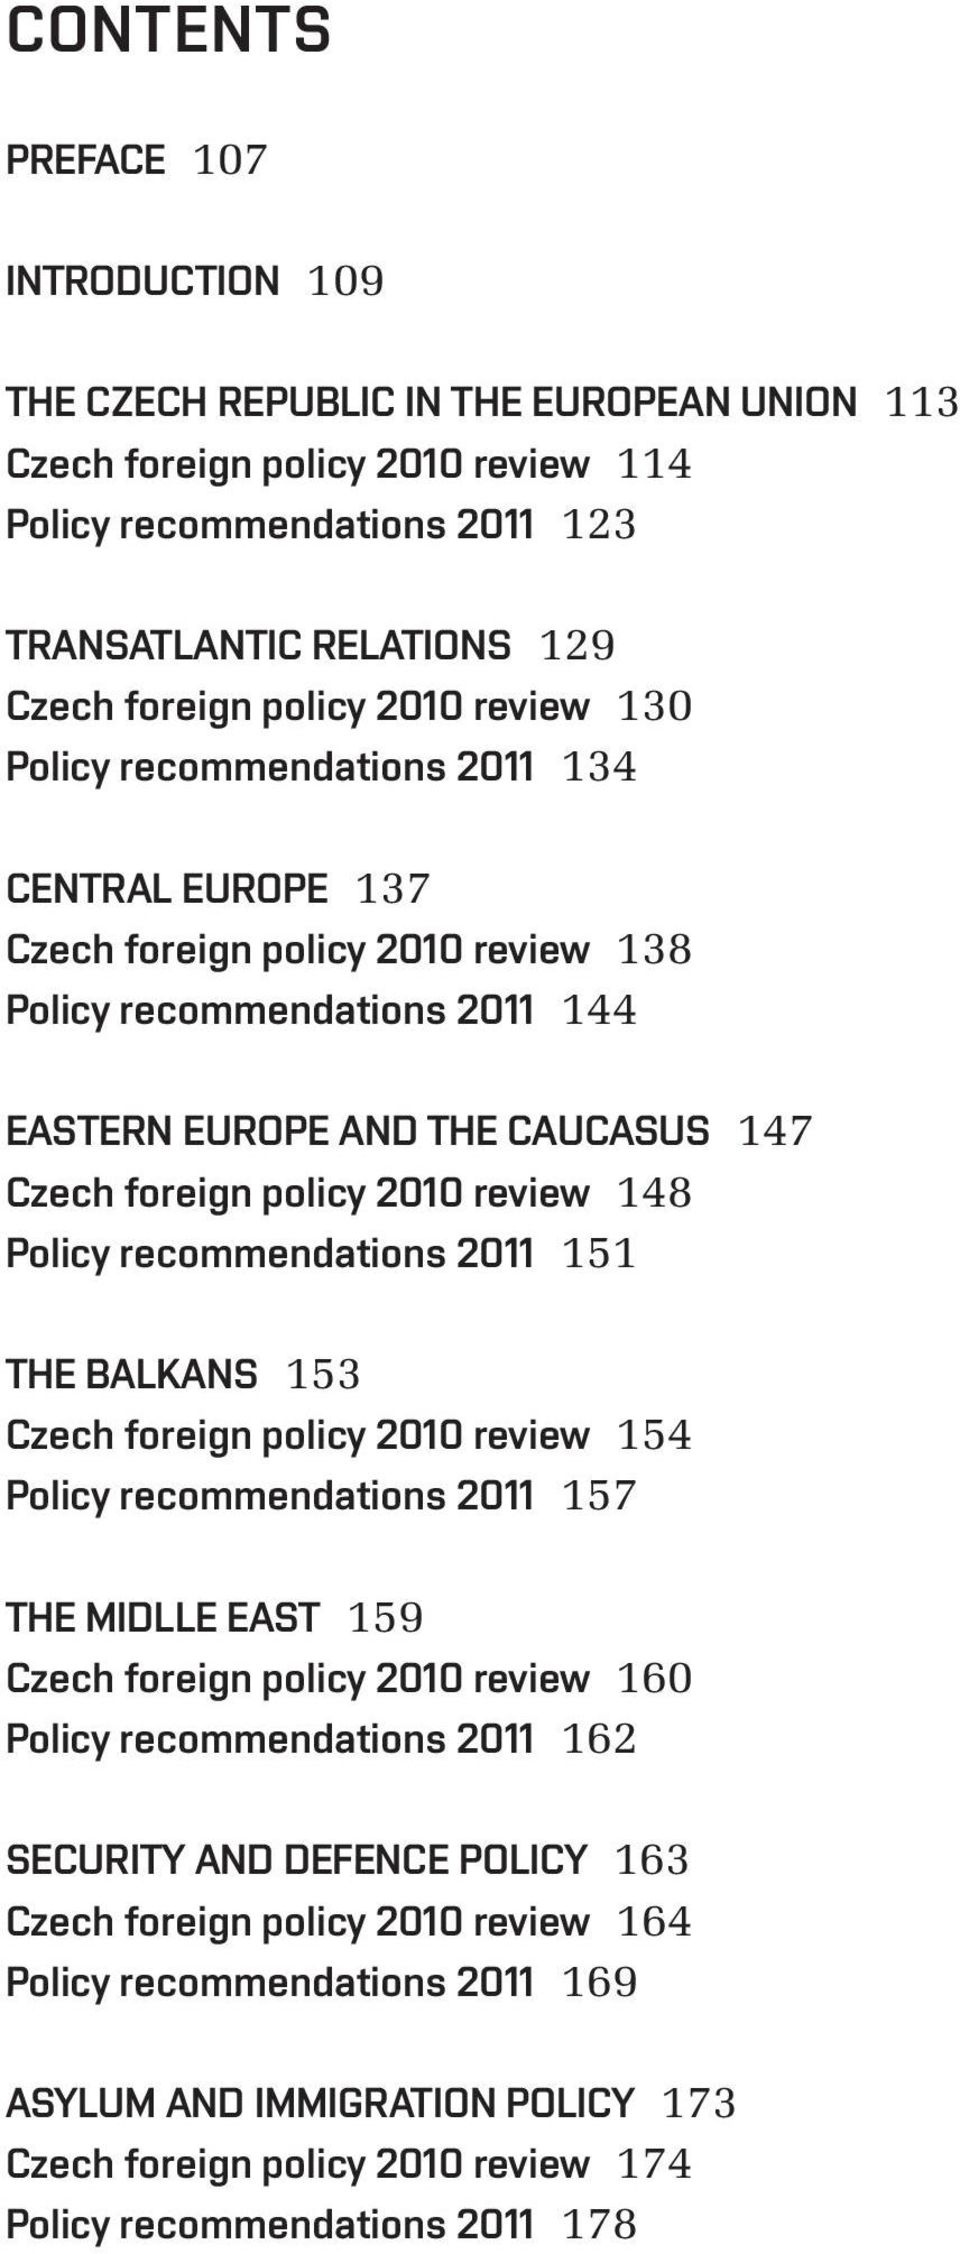 2010 review 148 Policy recommendations 2011 151 THE BALKANS 153 Czech foreign policy 2010 review 154 Policy recommendations 2011 157 THE MIDLLE EAST 159 Czech foreign policy 2010 review 160 Policy